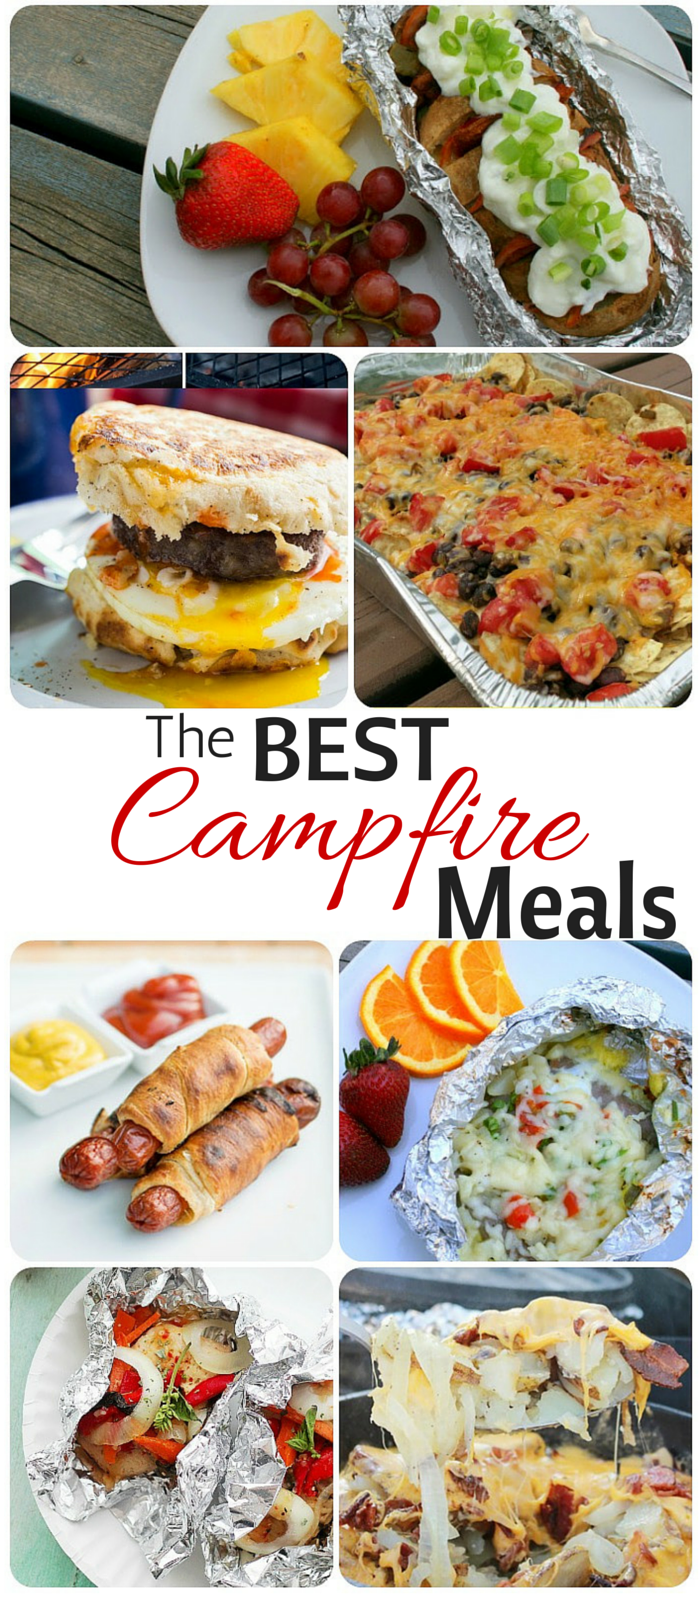 Simple And Easy Camping Meals Breakfast Lunch DinnerI Can